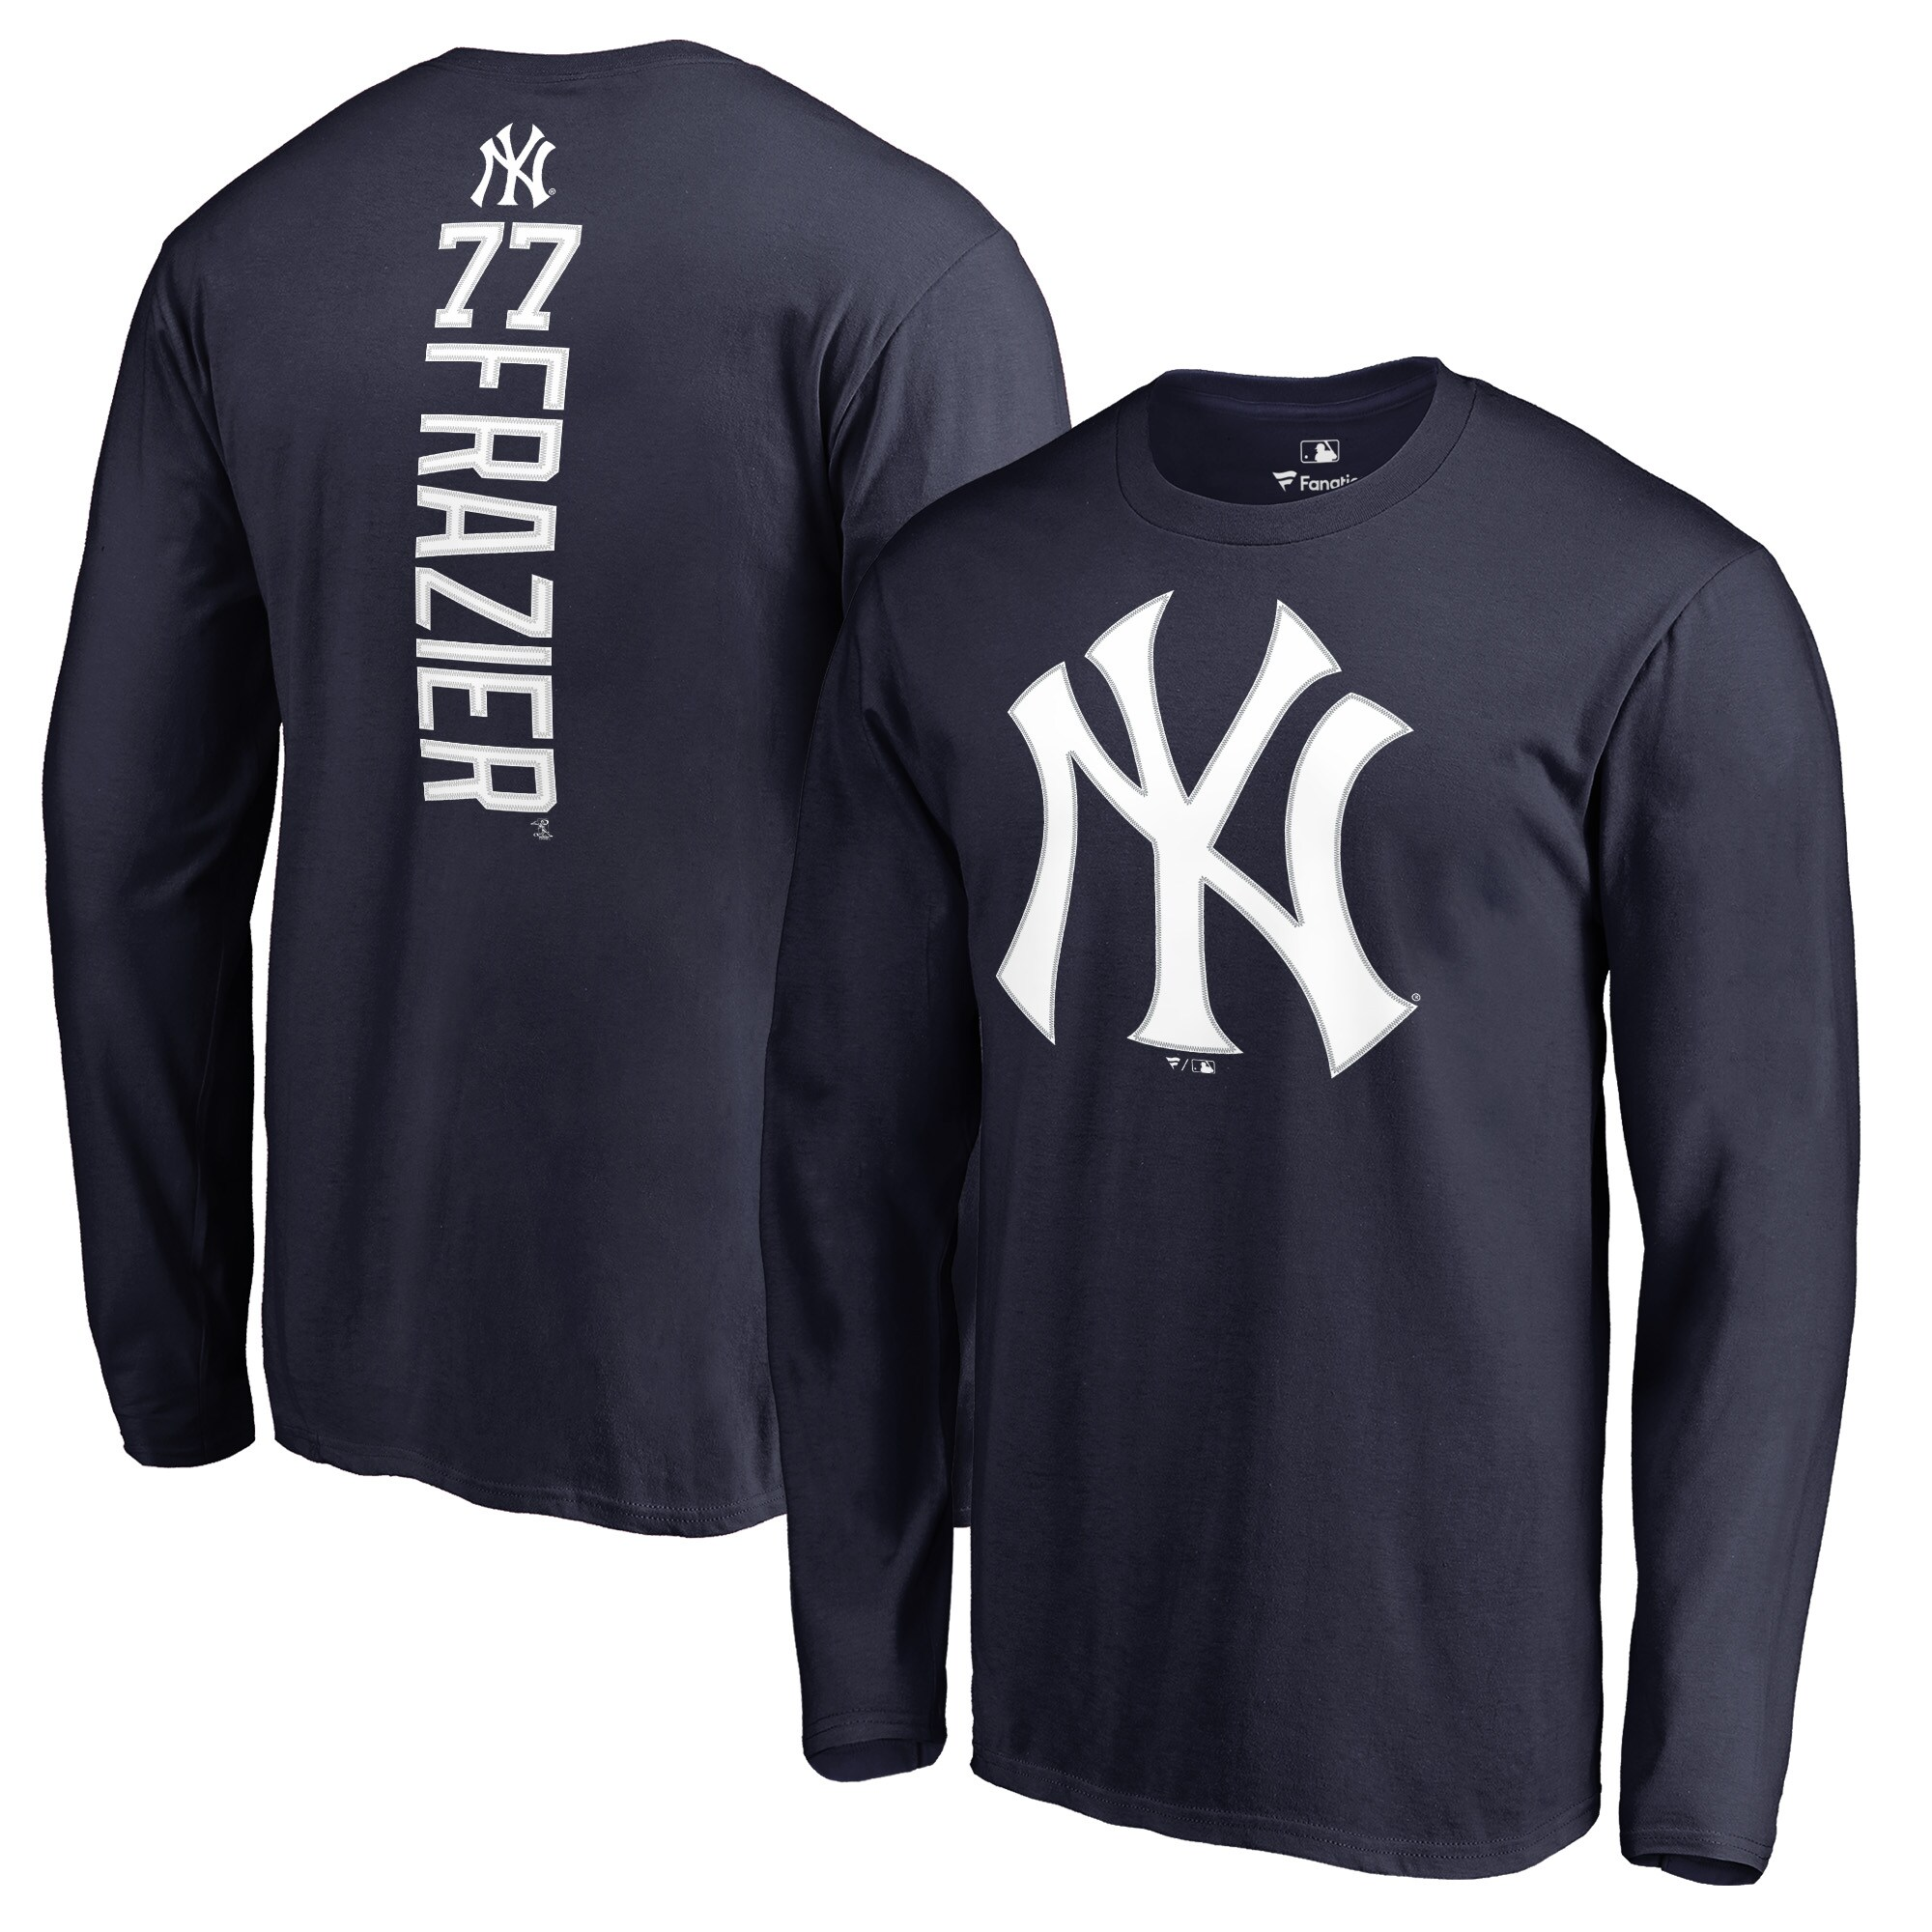 Clint Frazier New York Yankees Fanatics Branded Backer Long Sleeve T-Shirt - Navy